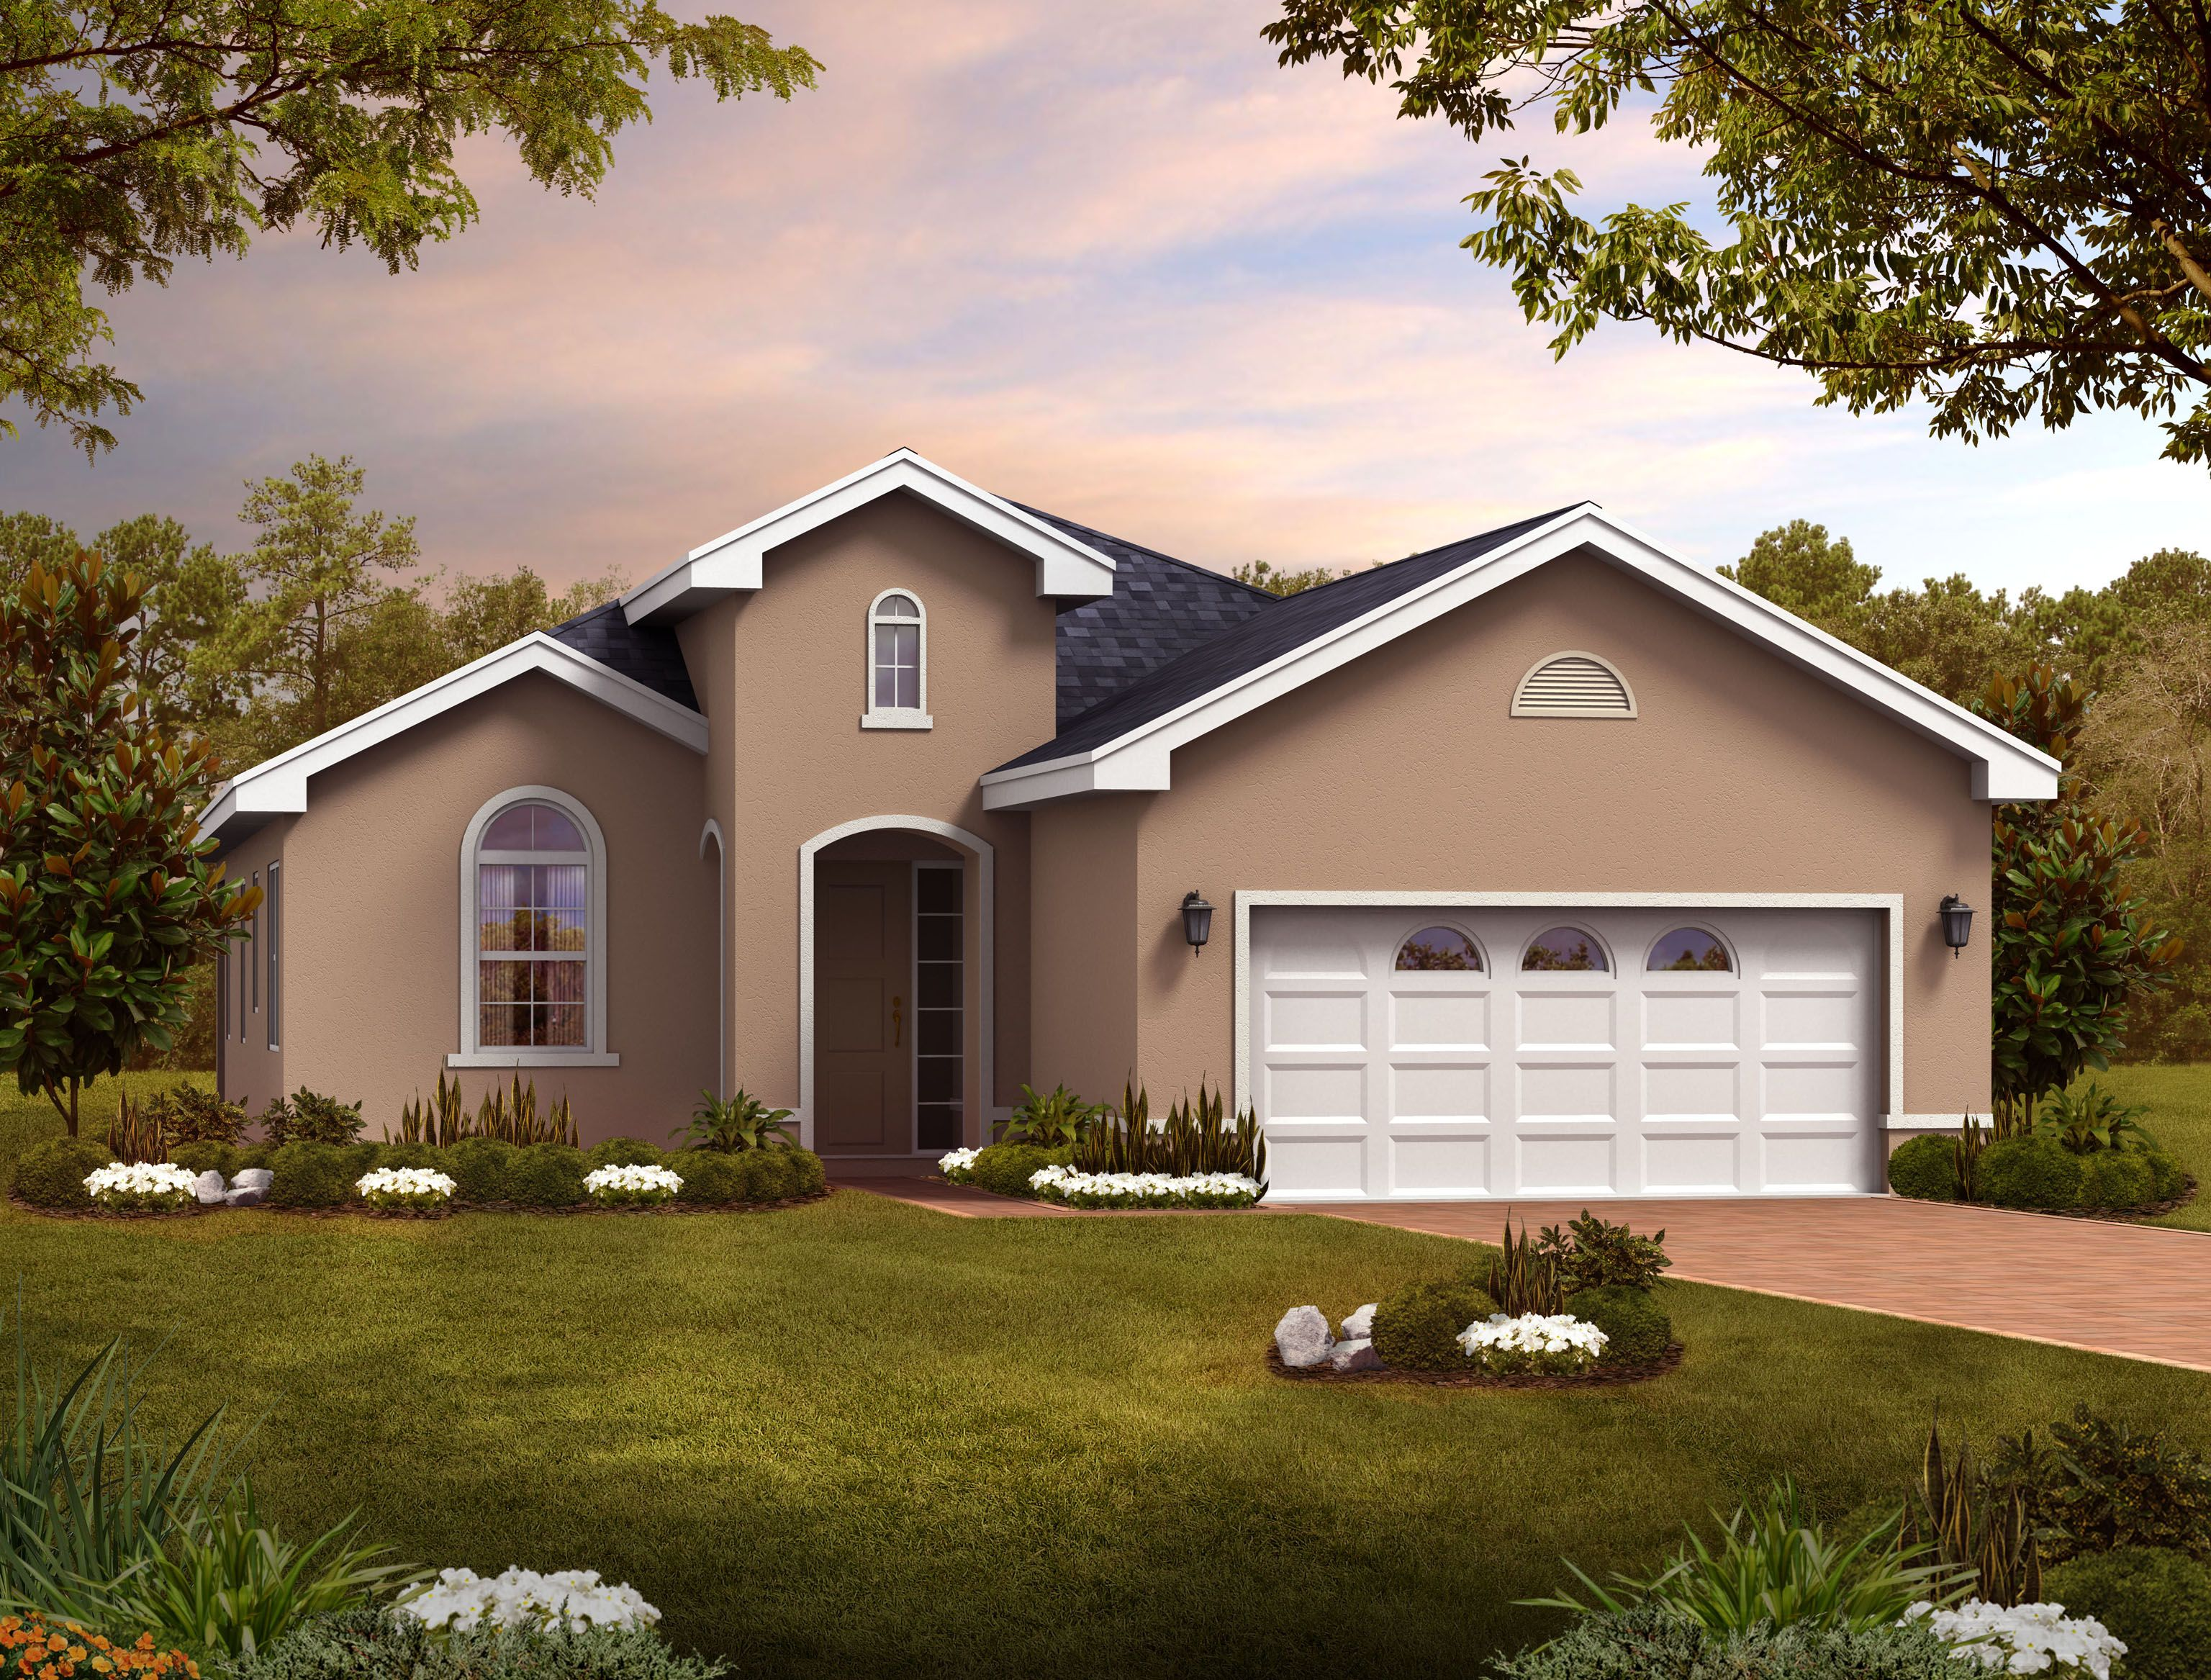 New Construction Homes & Plans in Lake County, FL | 1,699 Homes ...